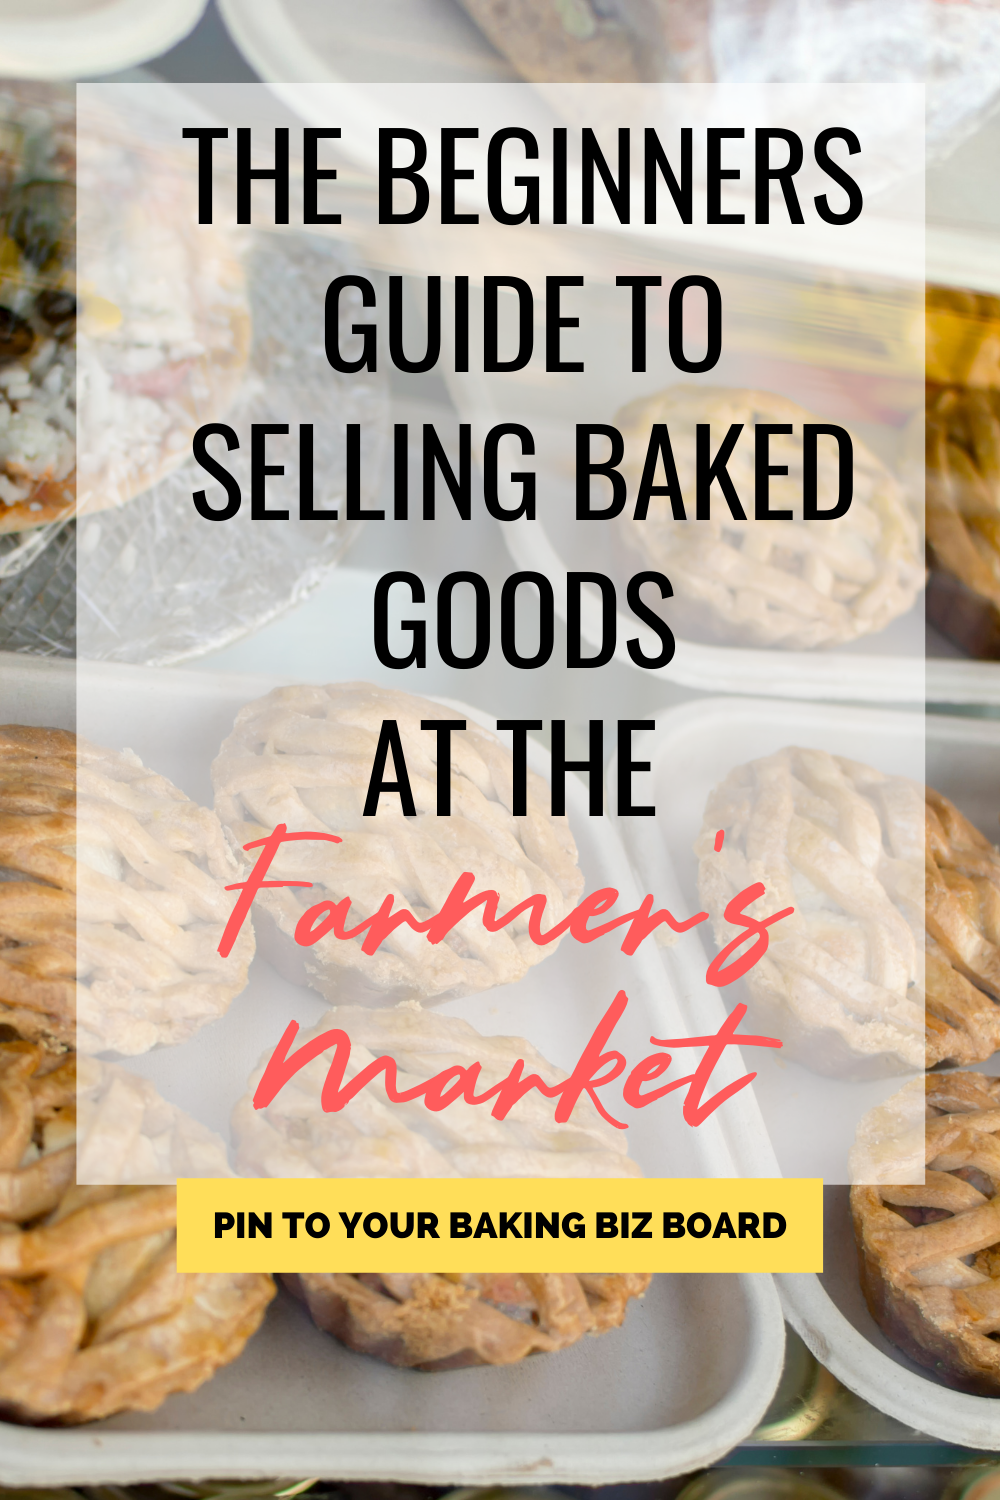 Selling Baked Goods at the Farmers Market